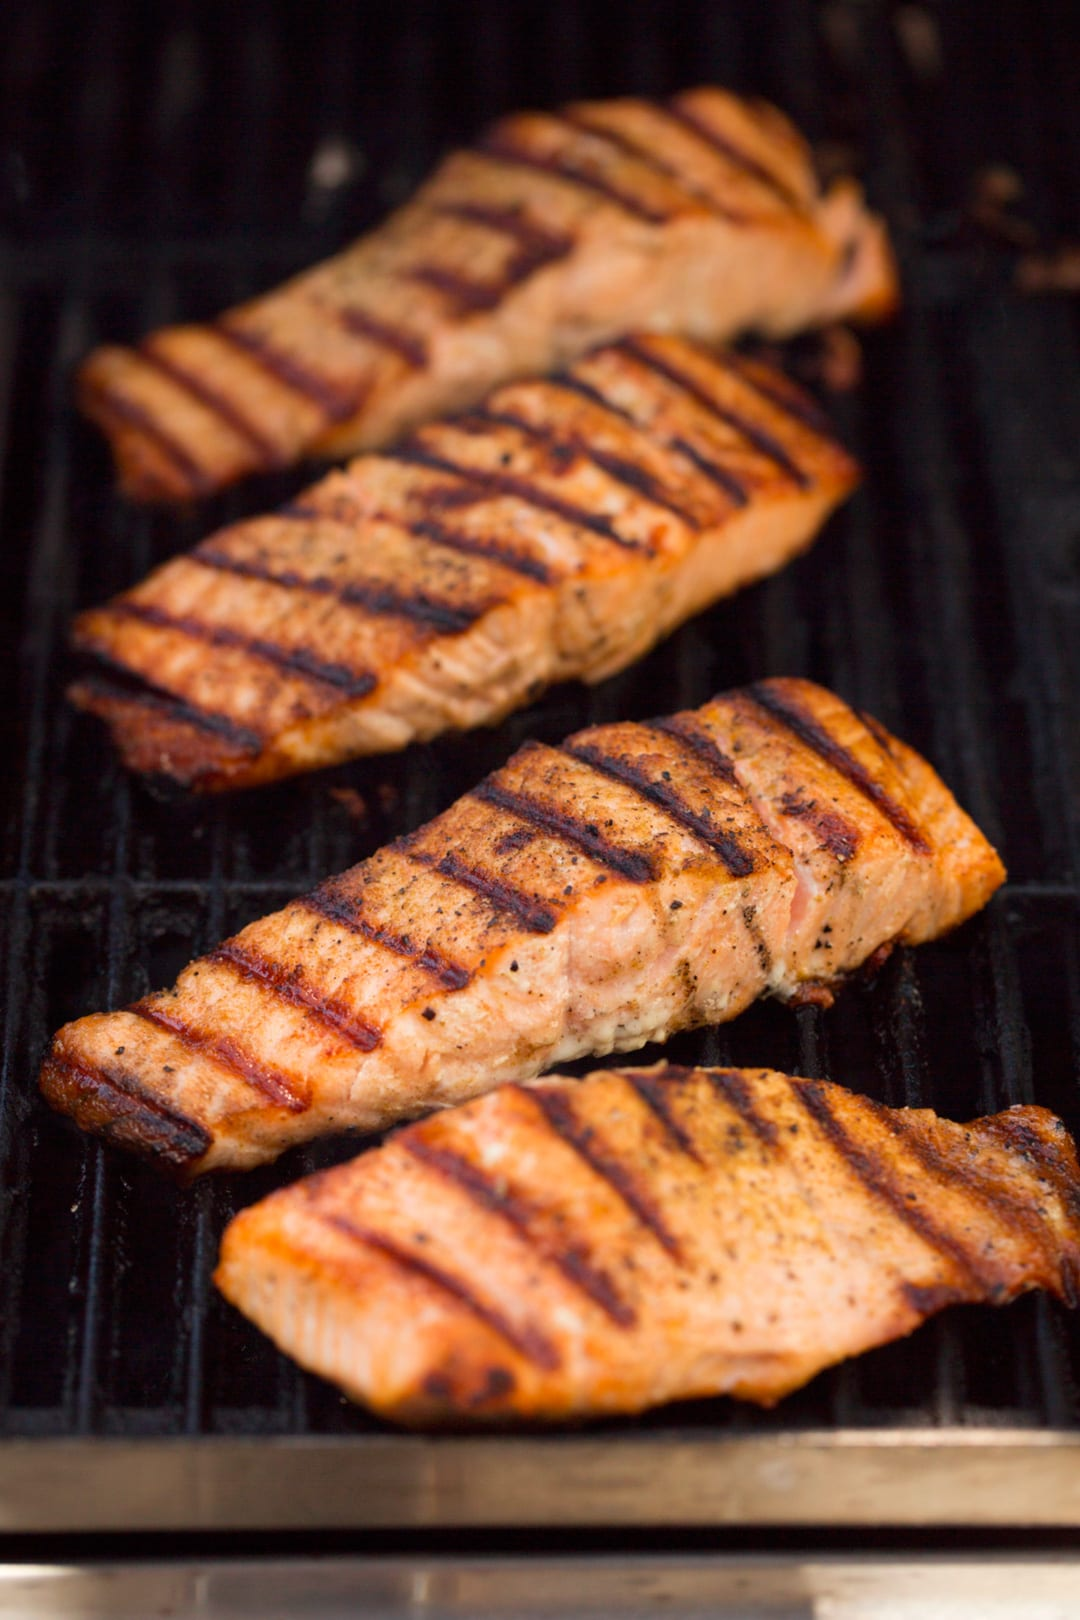 Four salmon fillets pictured here on a grill.